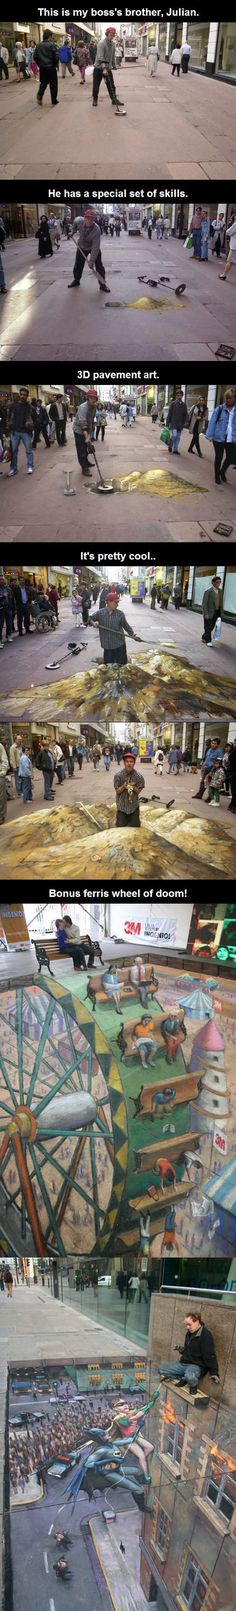 He Takes 'Gold Digger' To a Whole Different Dimension // funny pictures - funny photos - funny images - funny pics - funny quotes - #lol #humor #funnypictures Artists, Random Pics, 3D Street Art, Sidewalk Art, Gold Digger Quotes, Amaz, Awesom, Ferris Wheels, Chalk Art